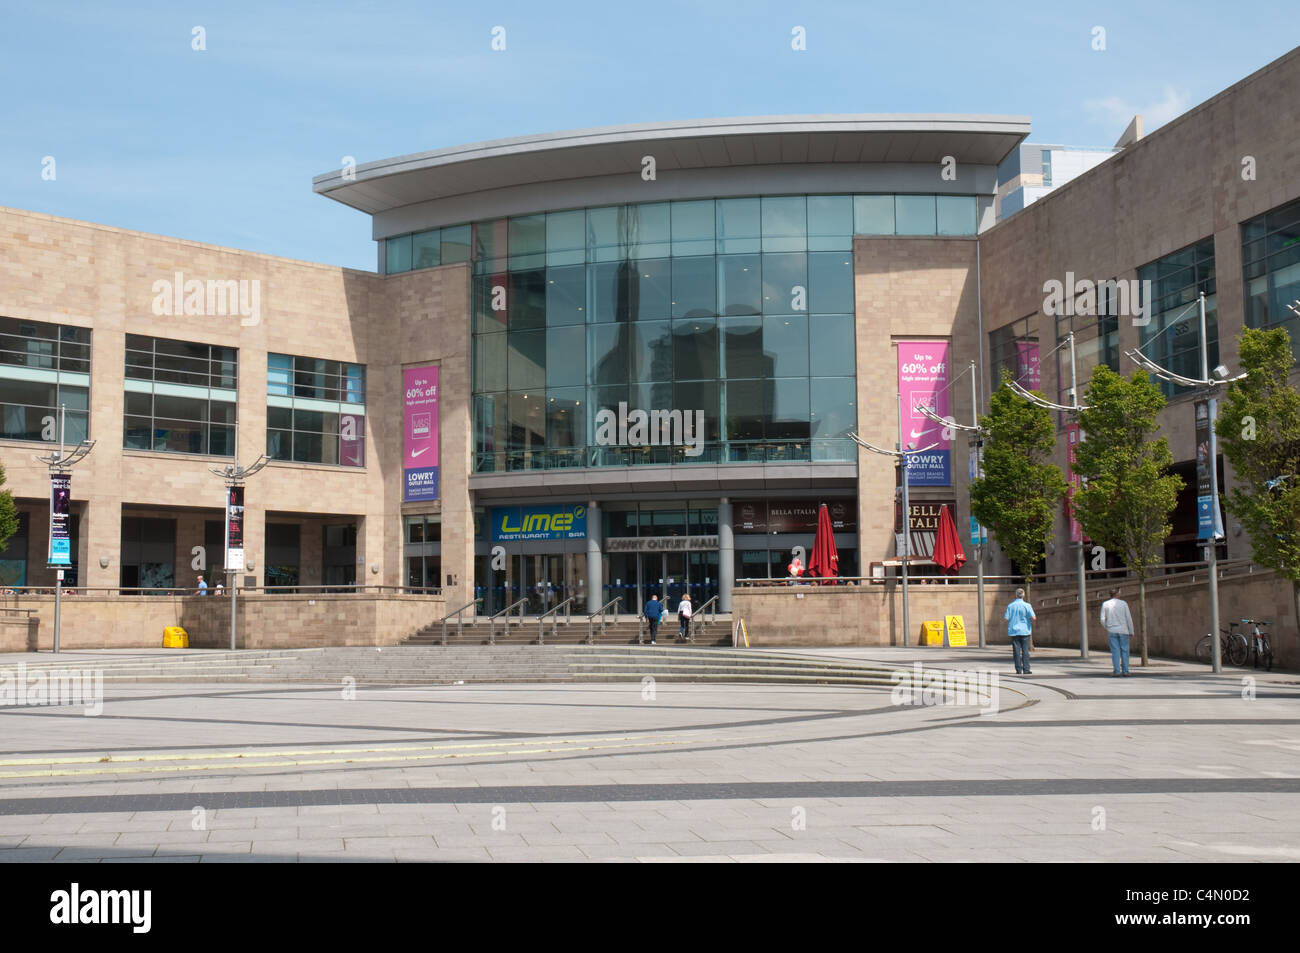 The Lowry Outlet Mall, Salford Quays.Retail,cafes,restaurants and cinema complex. - Stock Image